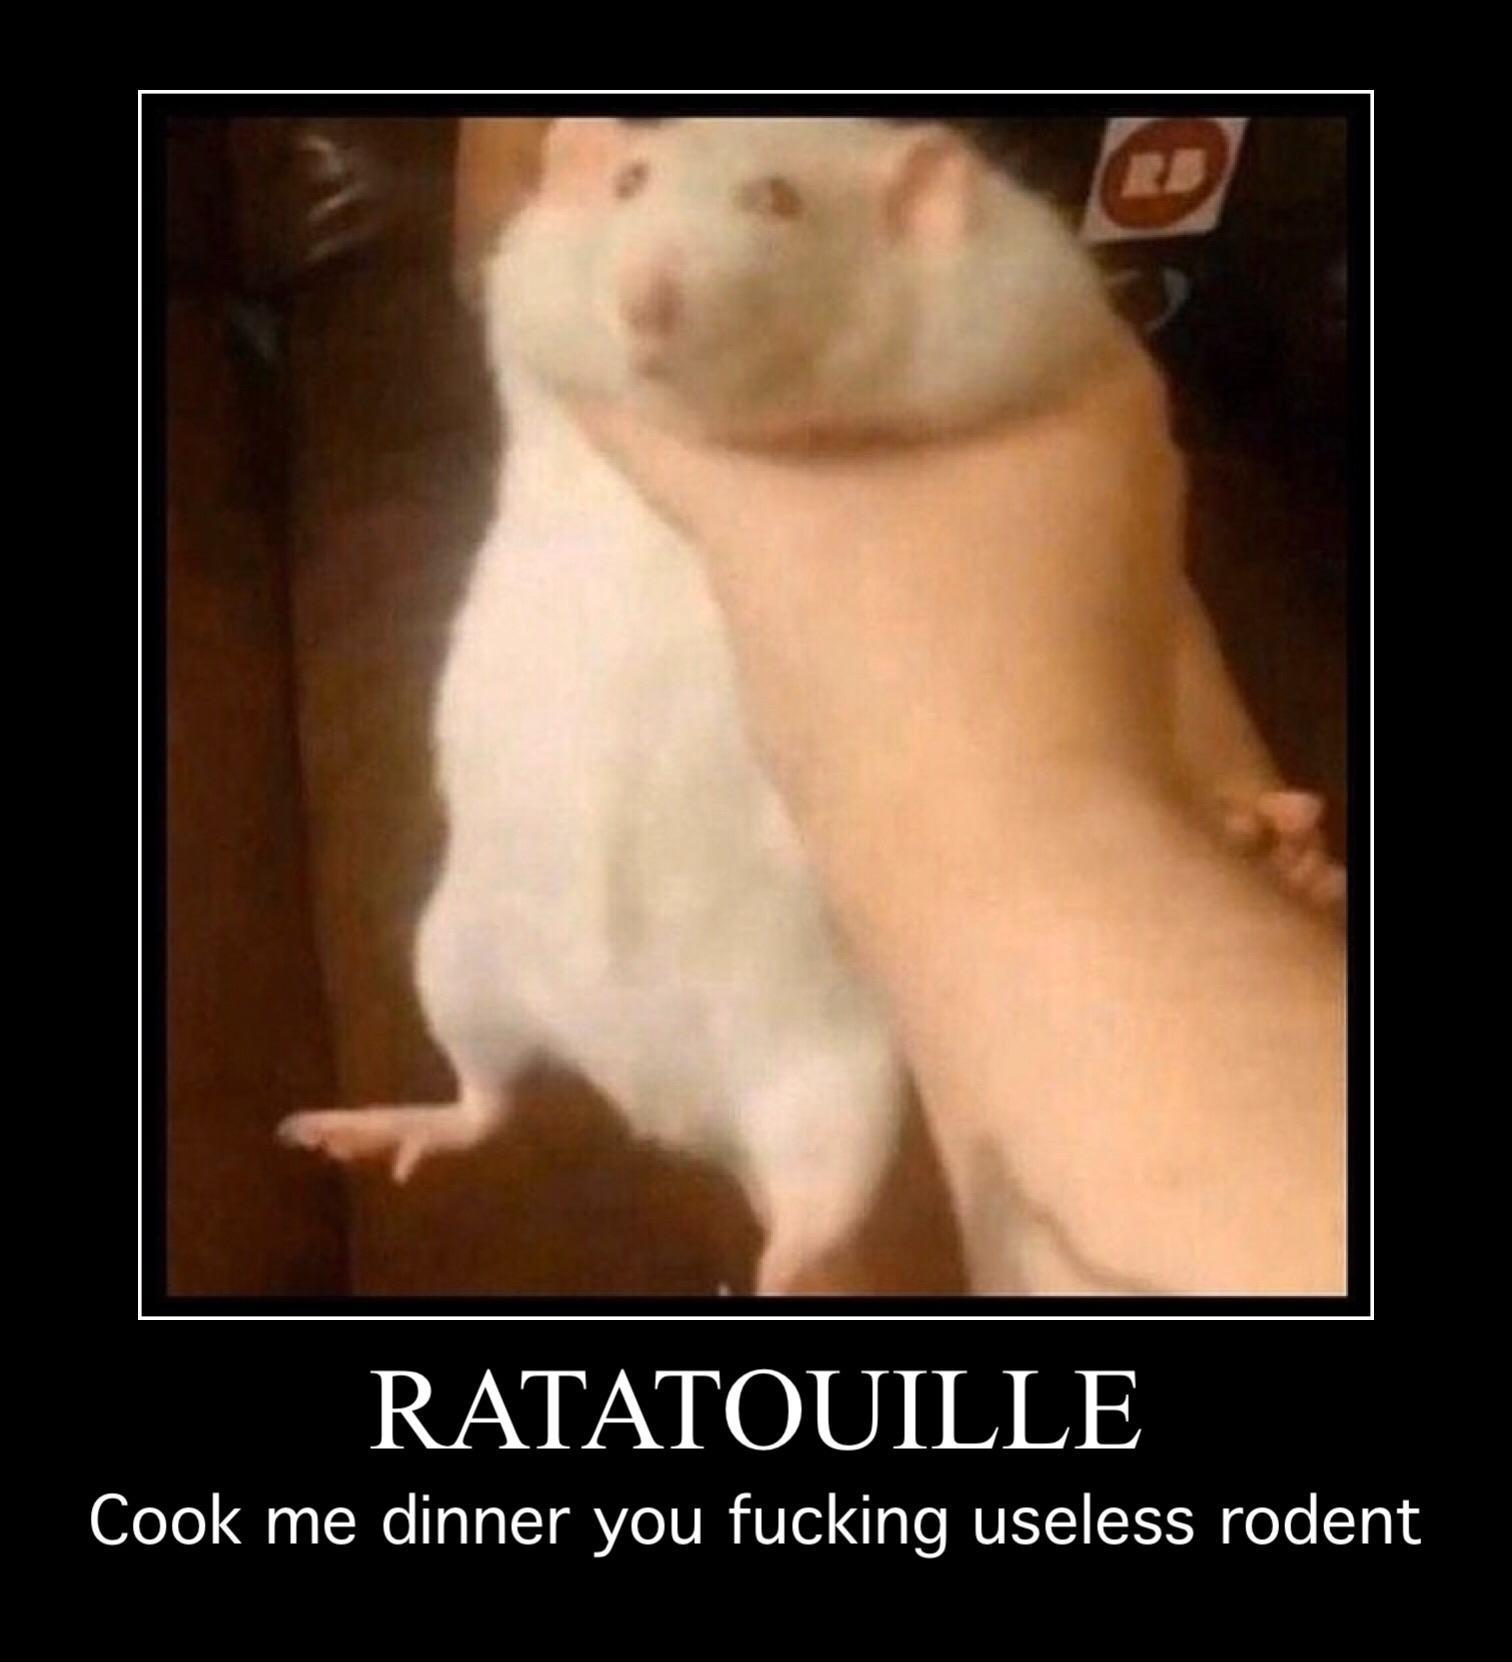 Ratatouille Cook Me Dinner You Fucking Useless Rodent Fat Rat Being Grabbed Know Your Meme